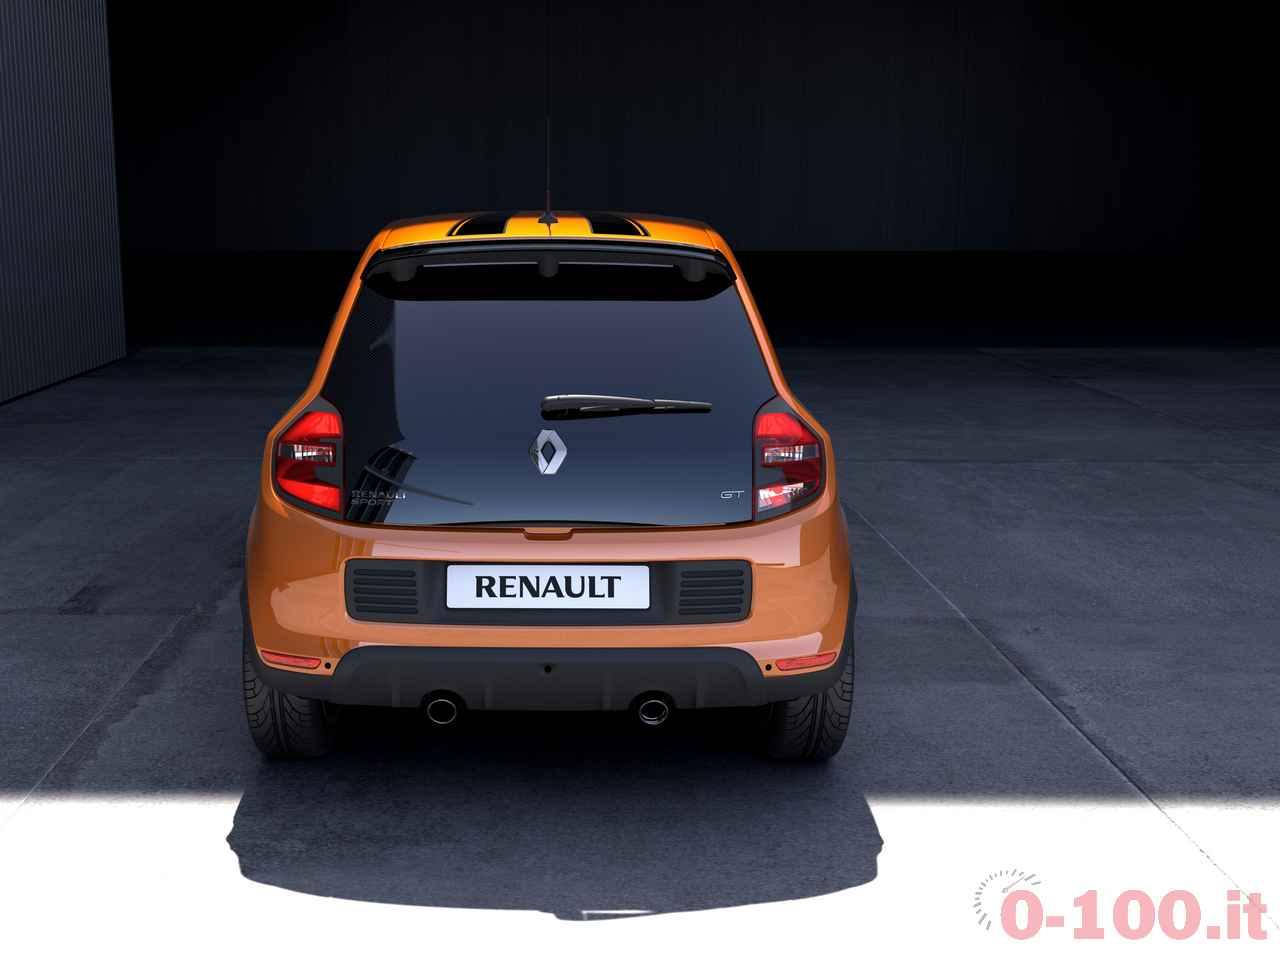 renault-twingo-gt-prezzo-price-festival-of-speed-di-goodwood-2016_0-1007